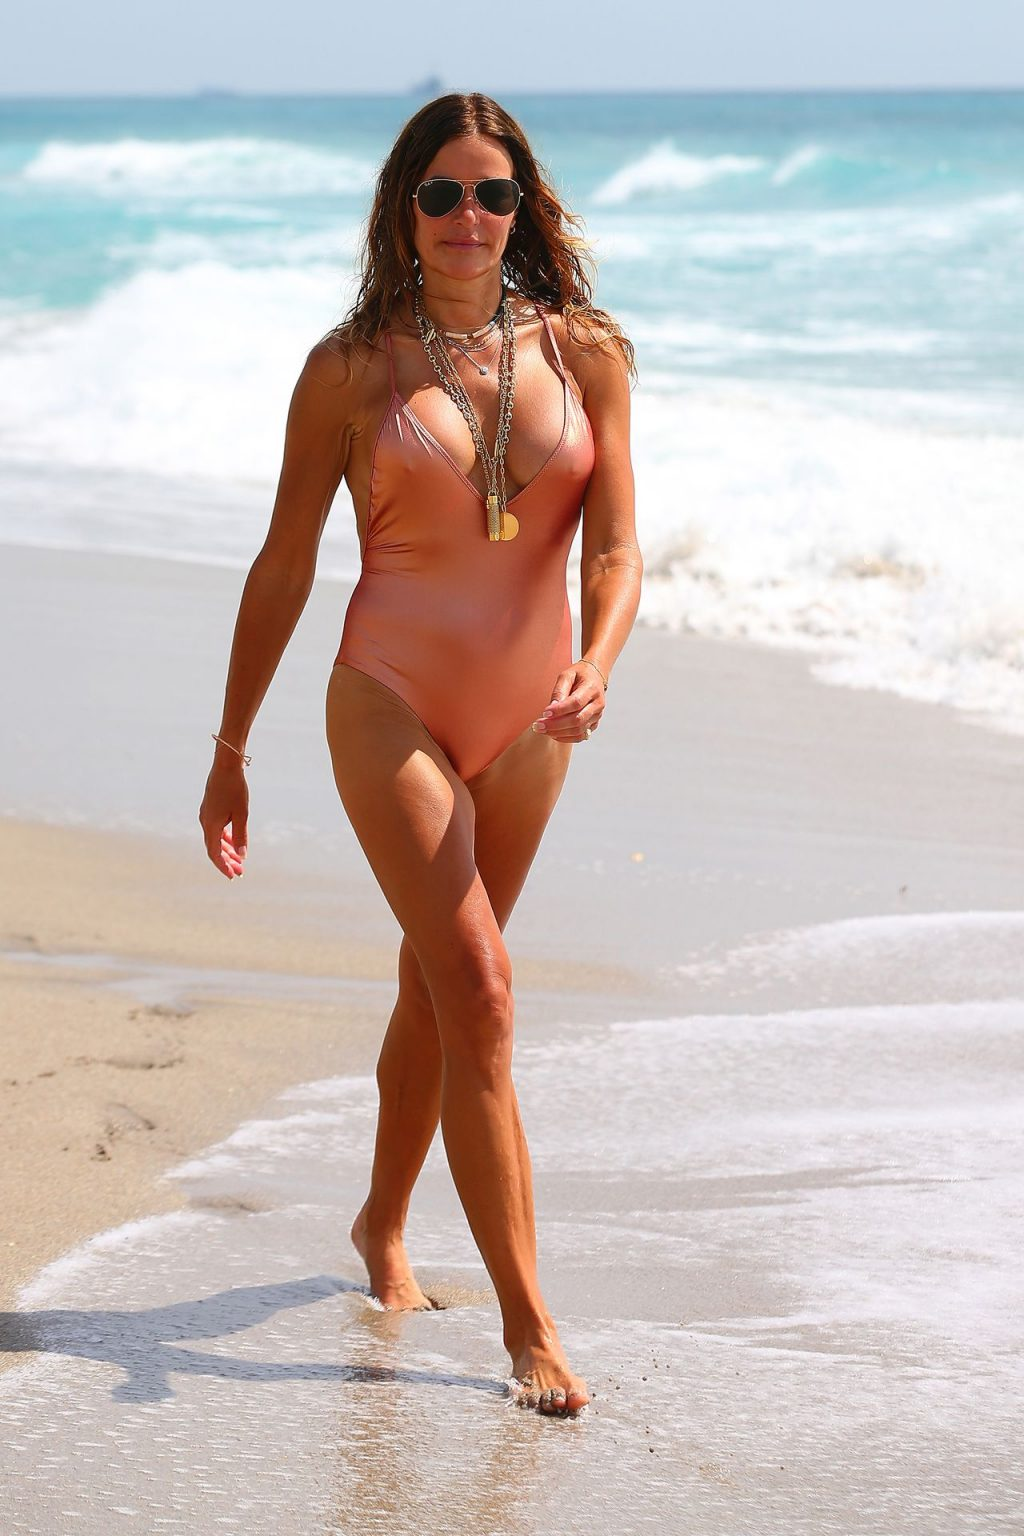 Kelly Bensimon Is Spotted on Worth Ave on Her Way to the Beach (38 Photos)